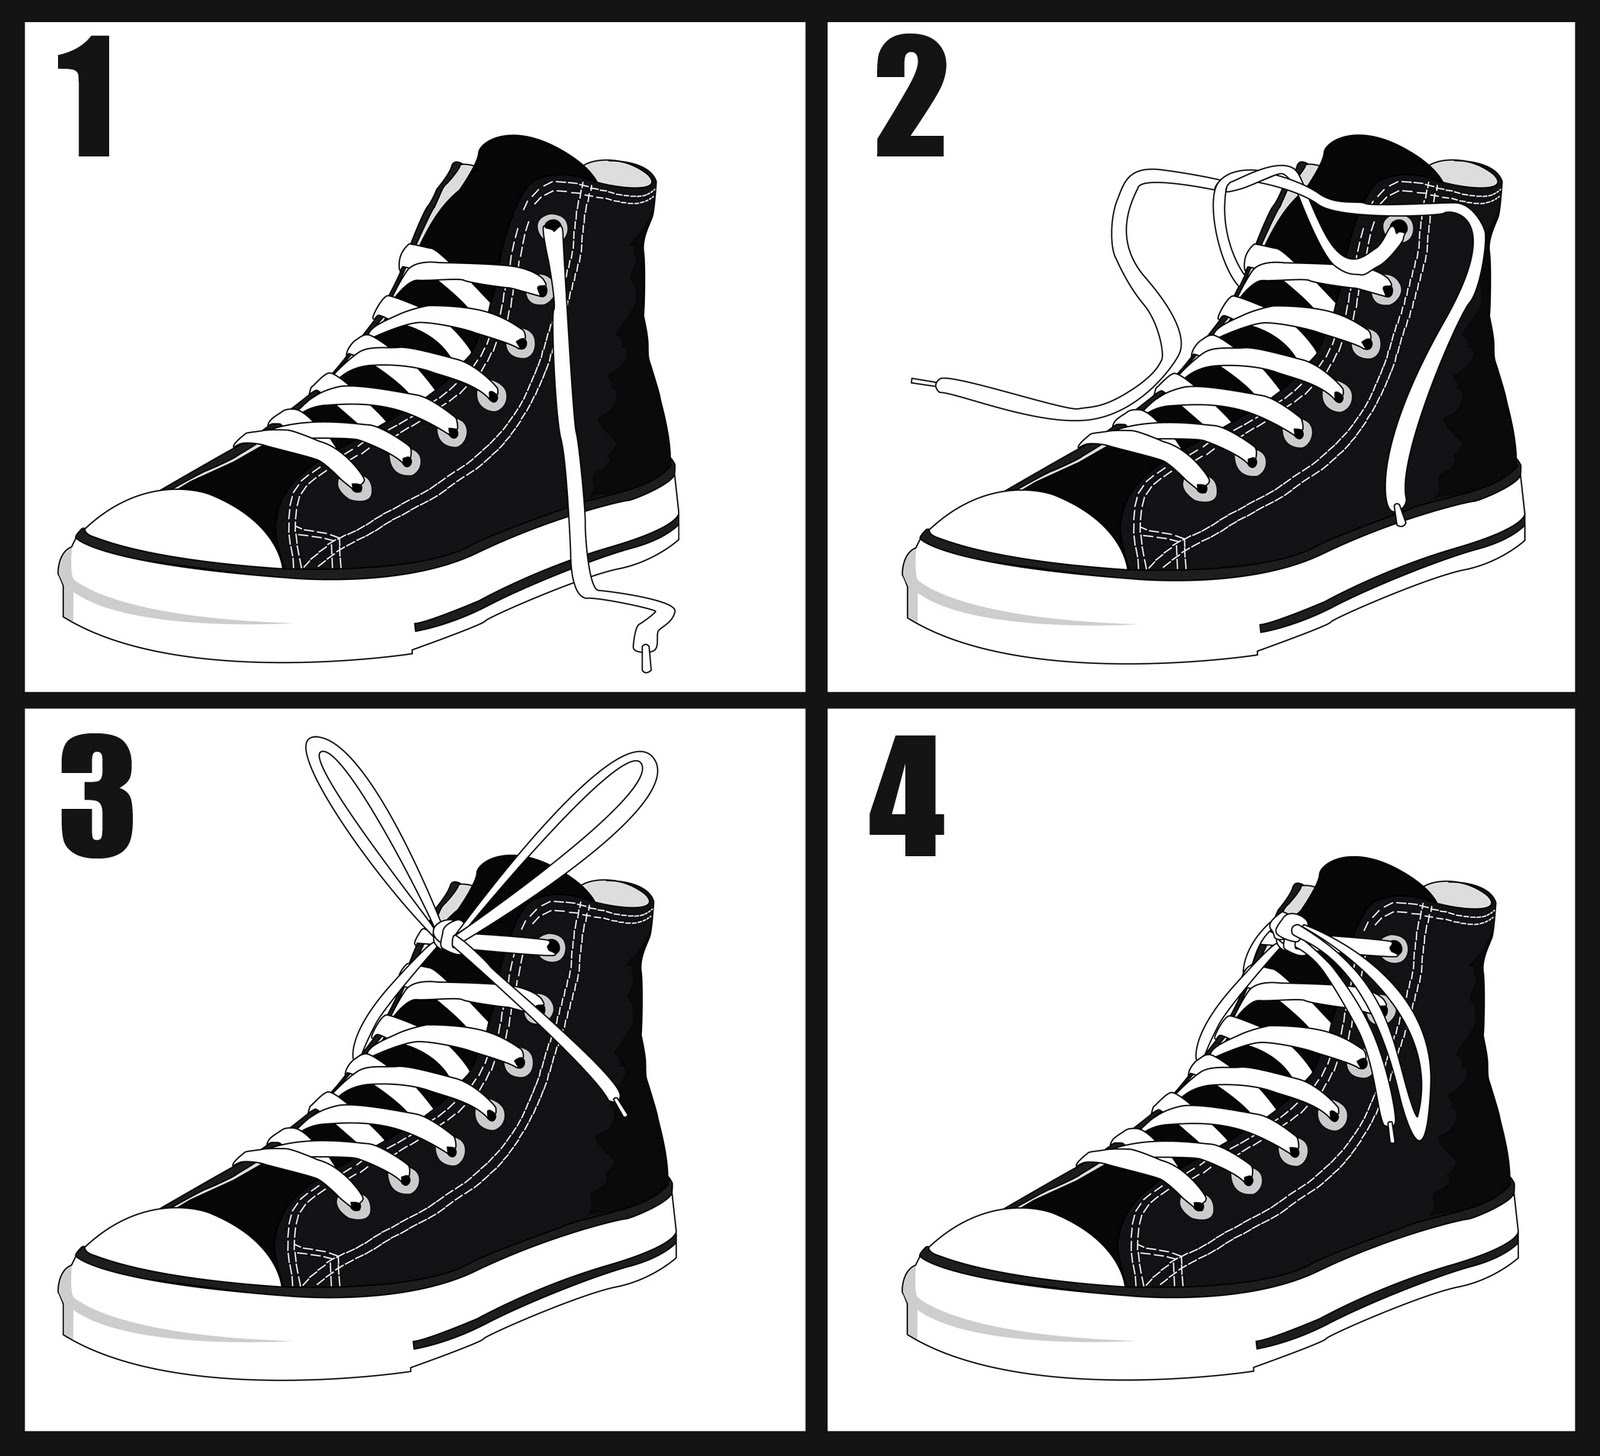 Branden Creese Artwork - Inside Brandens Head: How to Tie Your Shoes